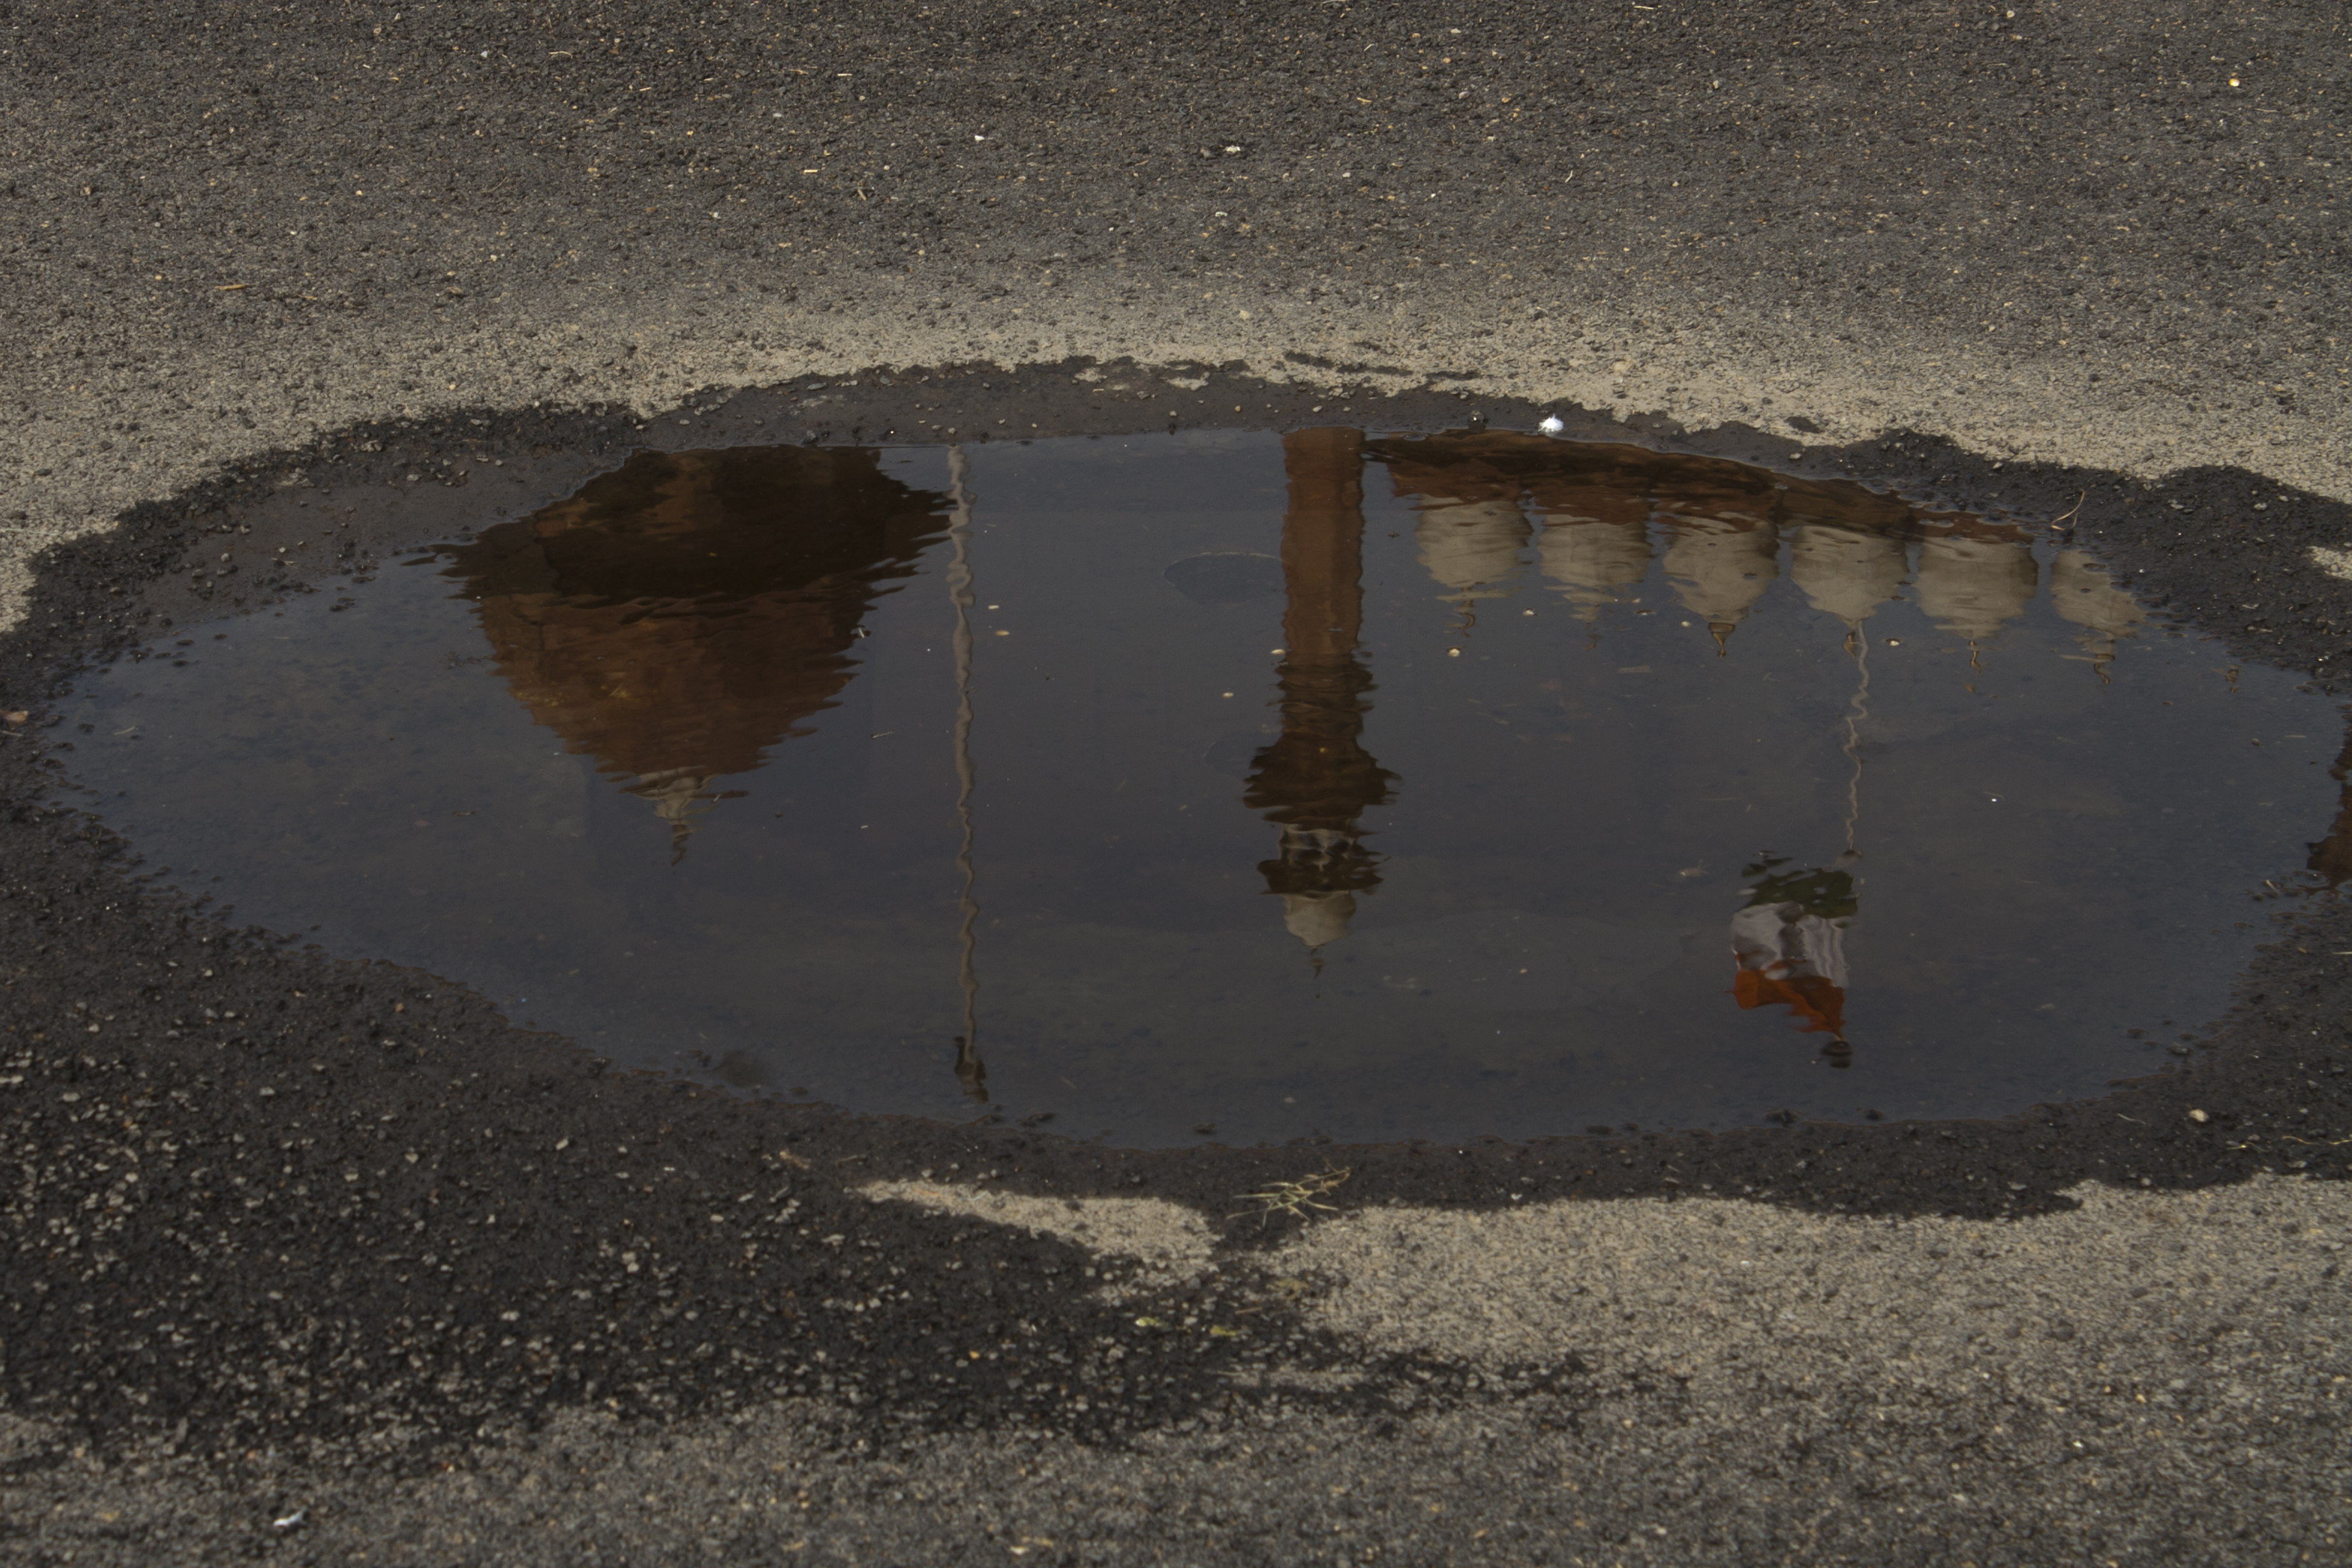 Puddle dating